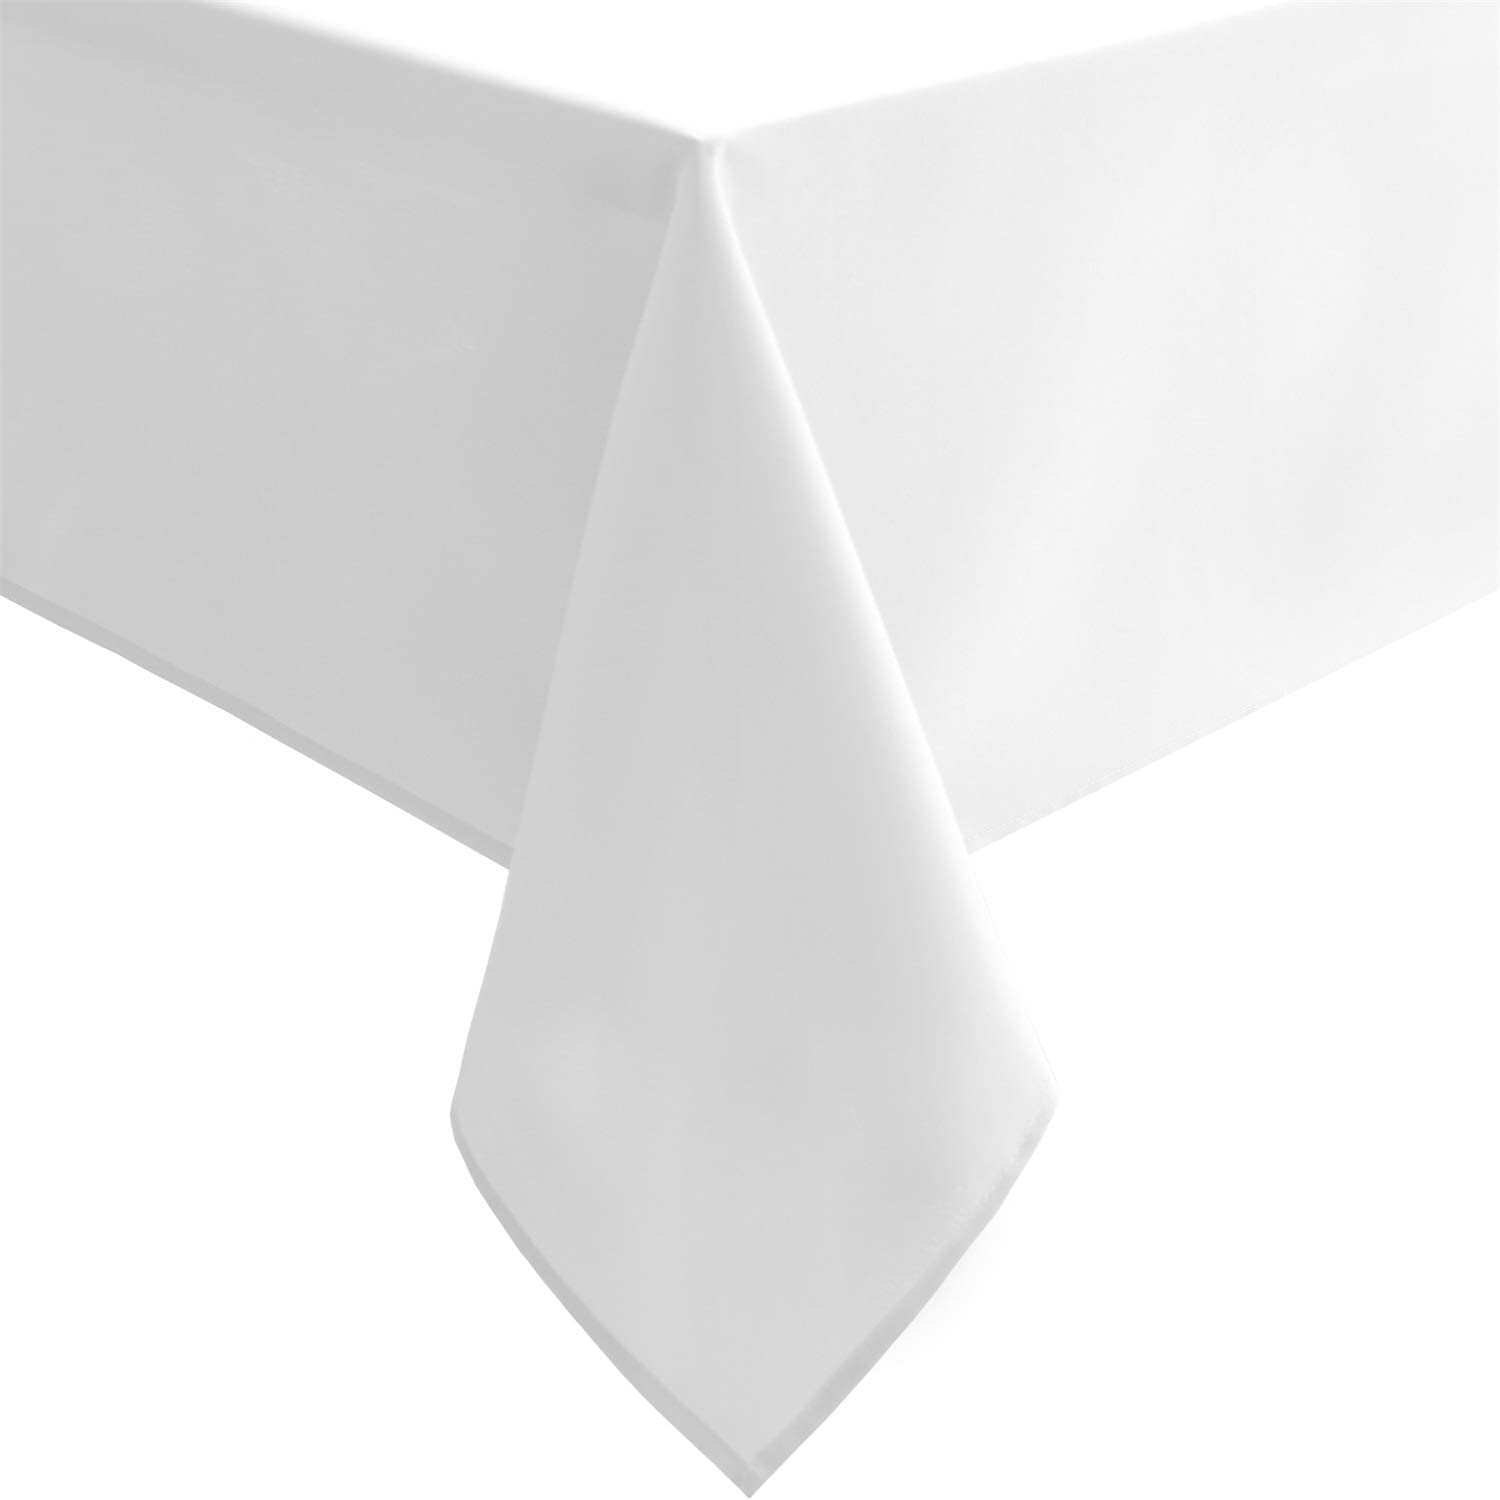 Hiasan White Tablecloth for Rectangle Tables - Waterproof and Spillproof Washable Fabric Table Cloth for Dining Room Kitchen Party, 60 x 120 Inch